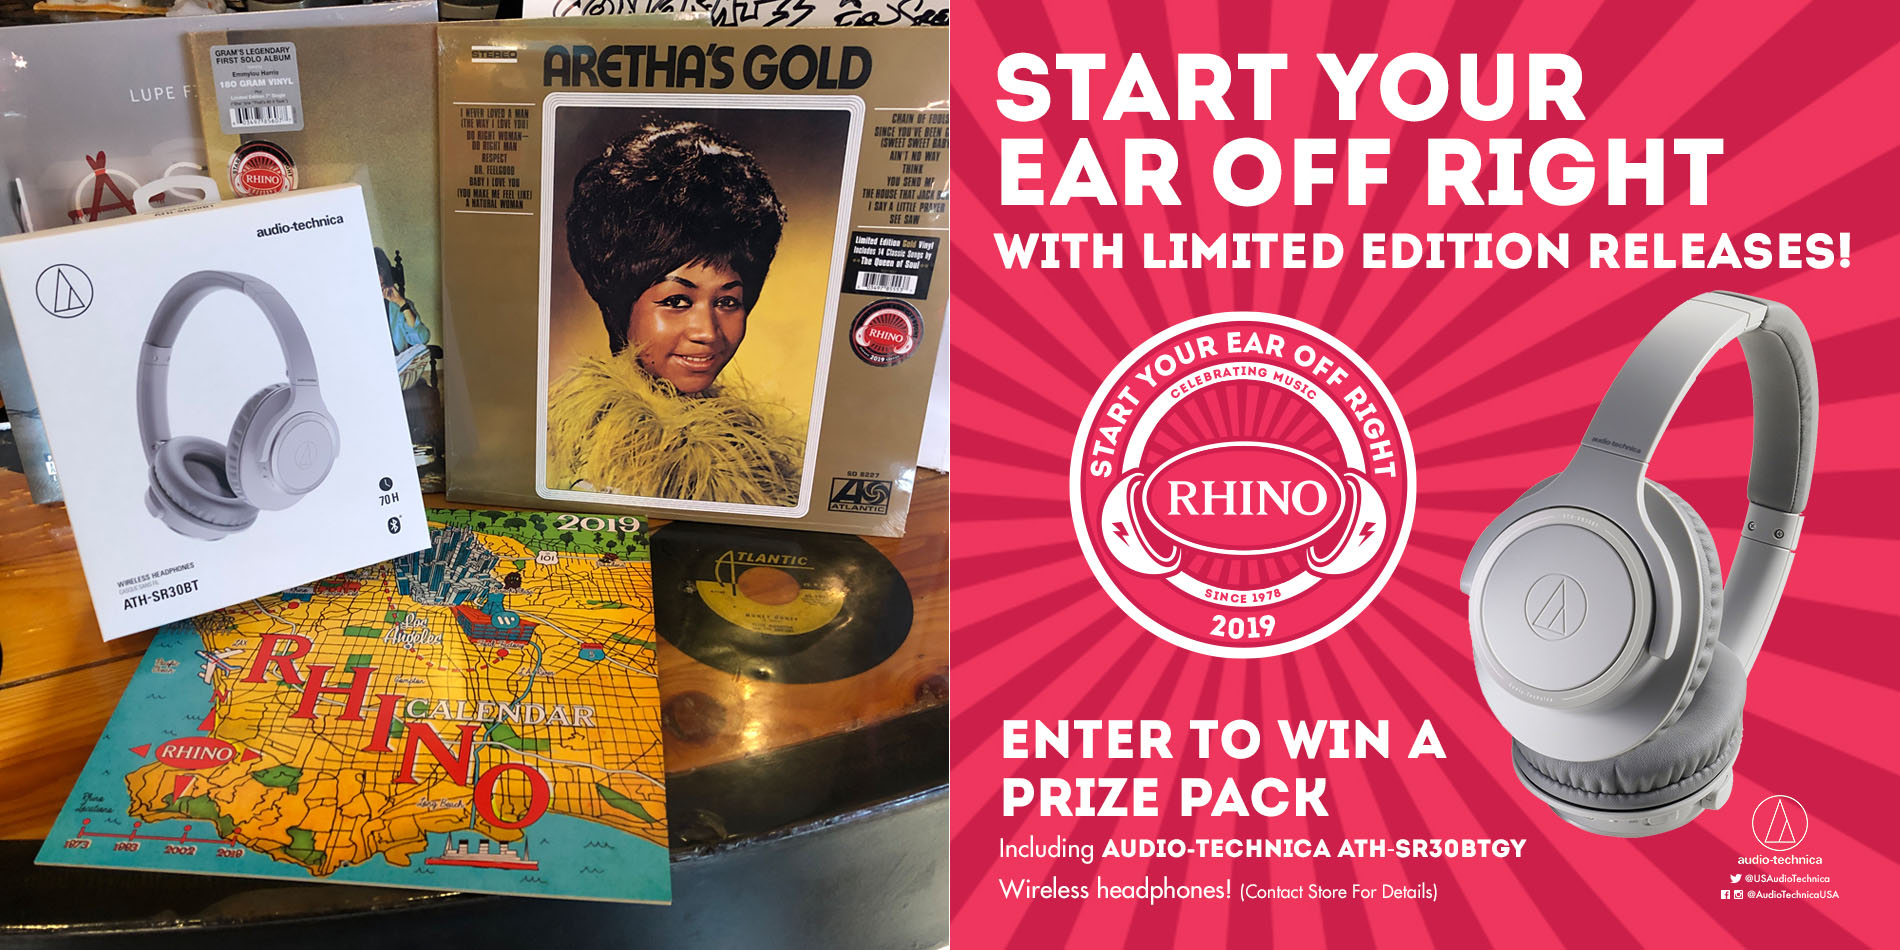 e56c23558ee The fine folks at Rhino want to rock your ears off with choice cuts from  their Start You Ear Off Right series of releases. Each release in this  series comes ...